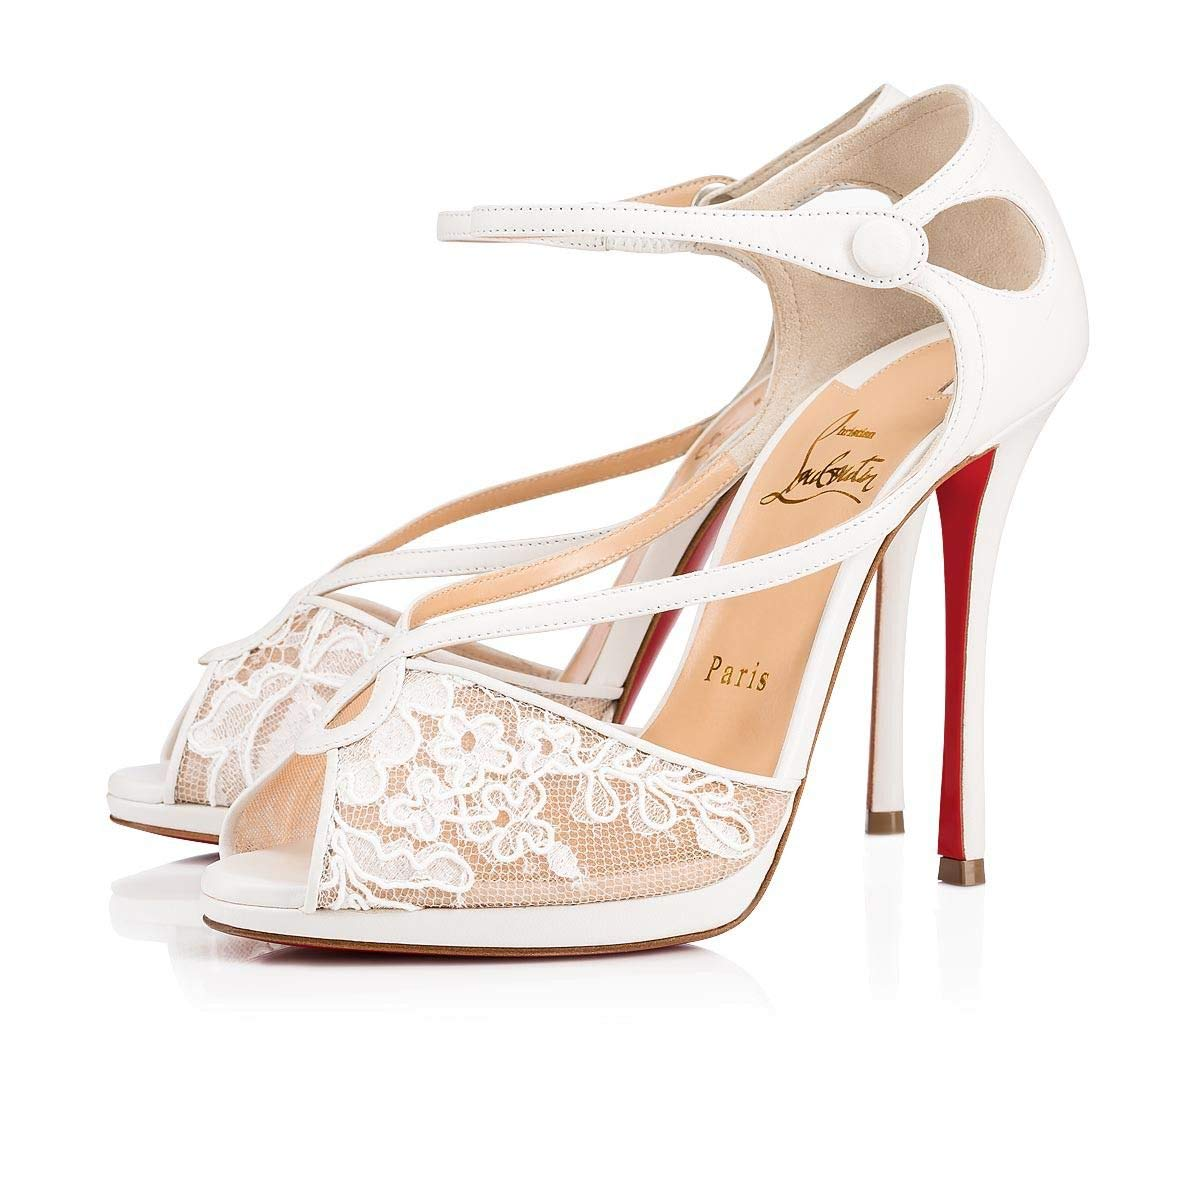 Christian Louboutin Luxury Fashion Leather Heels Sandal 02